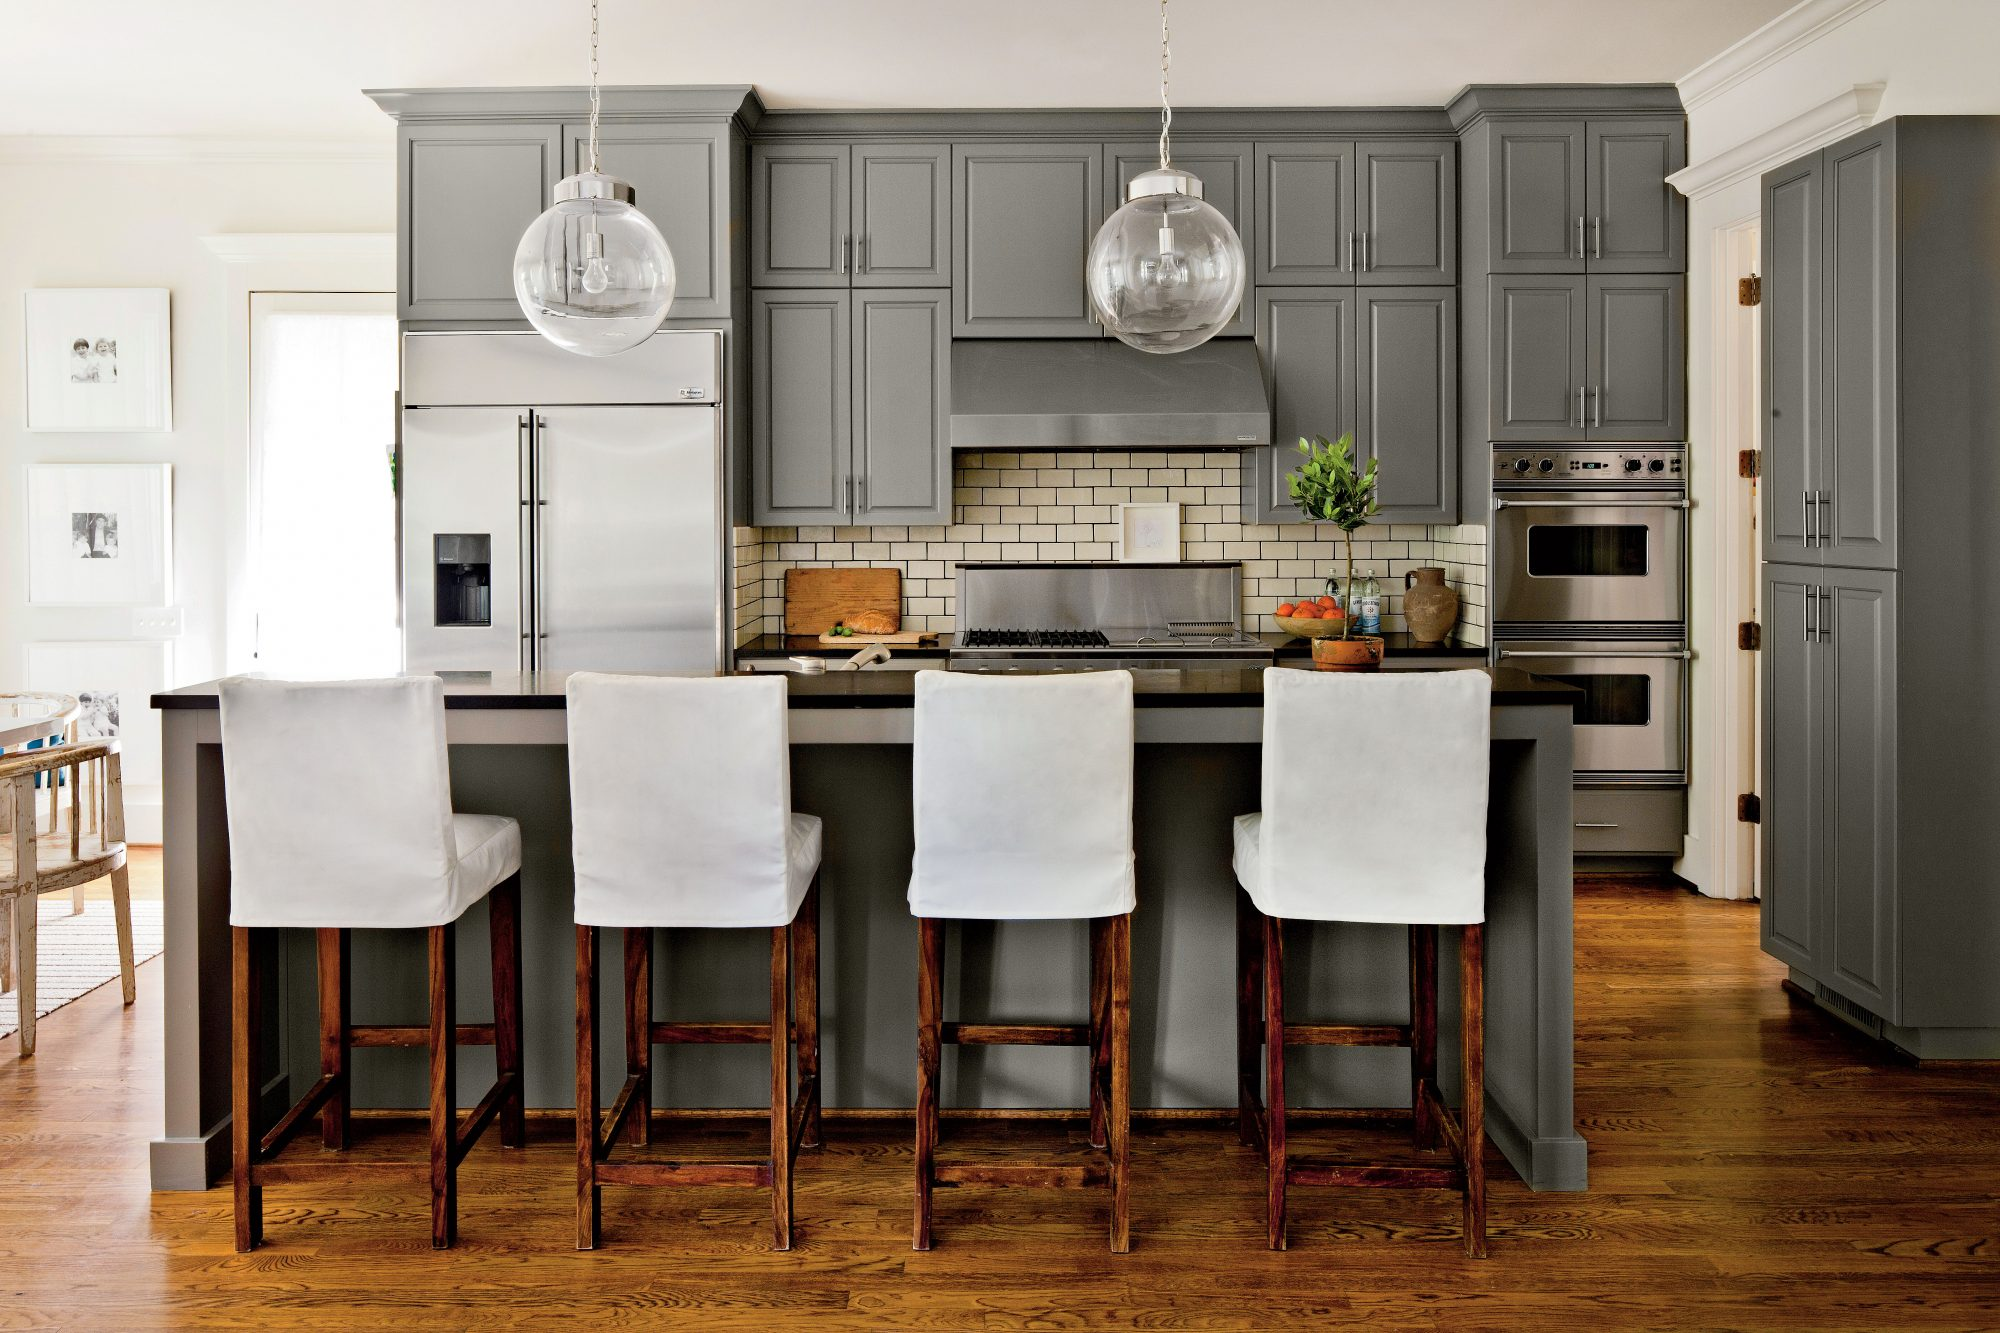 Before-and-After Kitchen Makeovers - Southern Living on trailer house kitchen ideas, work kitchen ideas, eatin kitchen ideas, living kitchen ideas, entertaining kitchen ideas, italian style kitchen ideas,